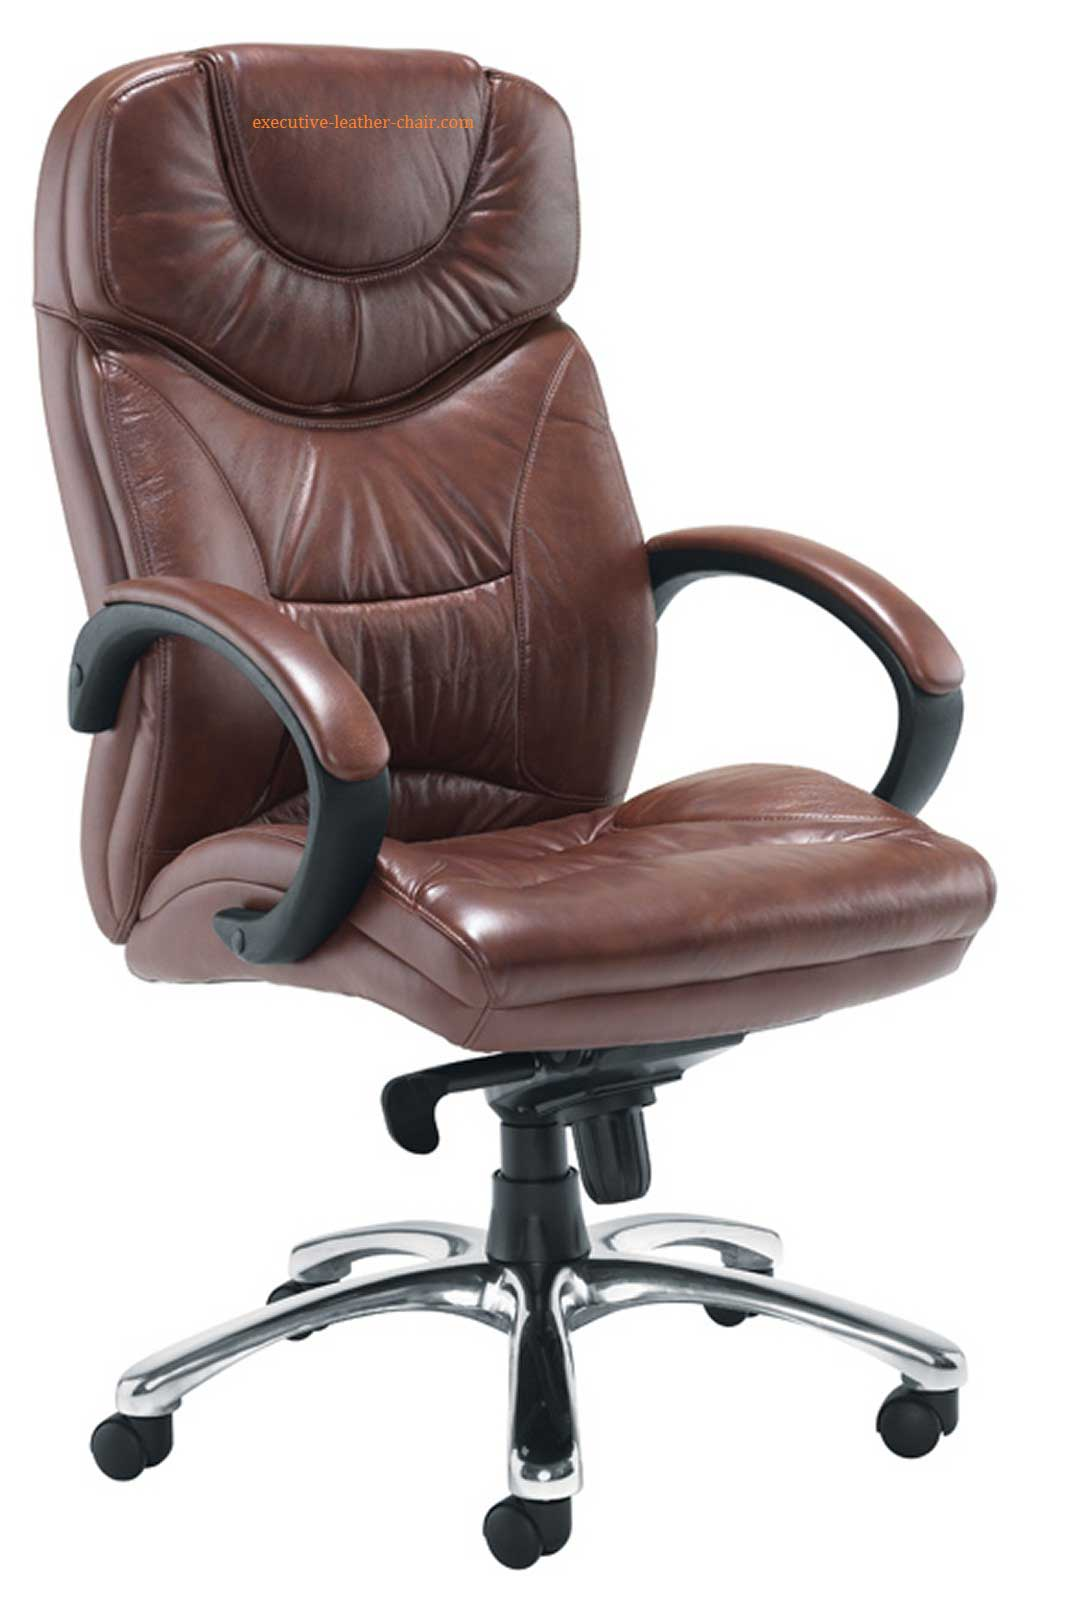 Office Furniture Warehouse - discount office chairs, office desk